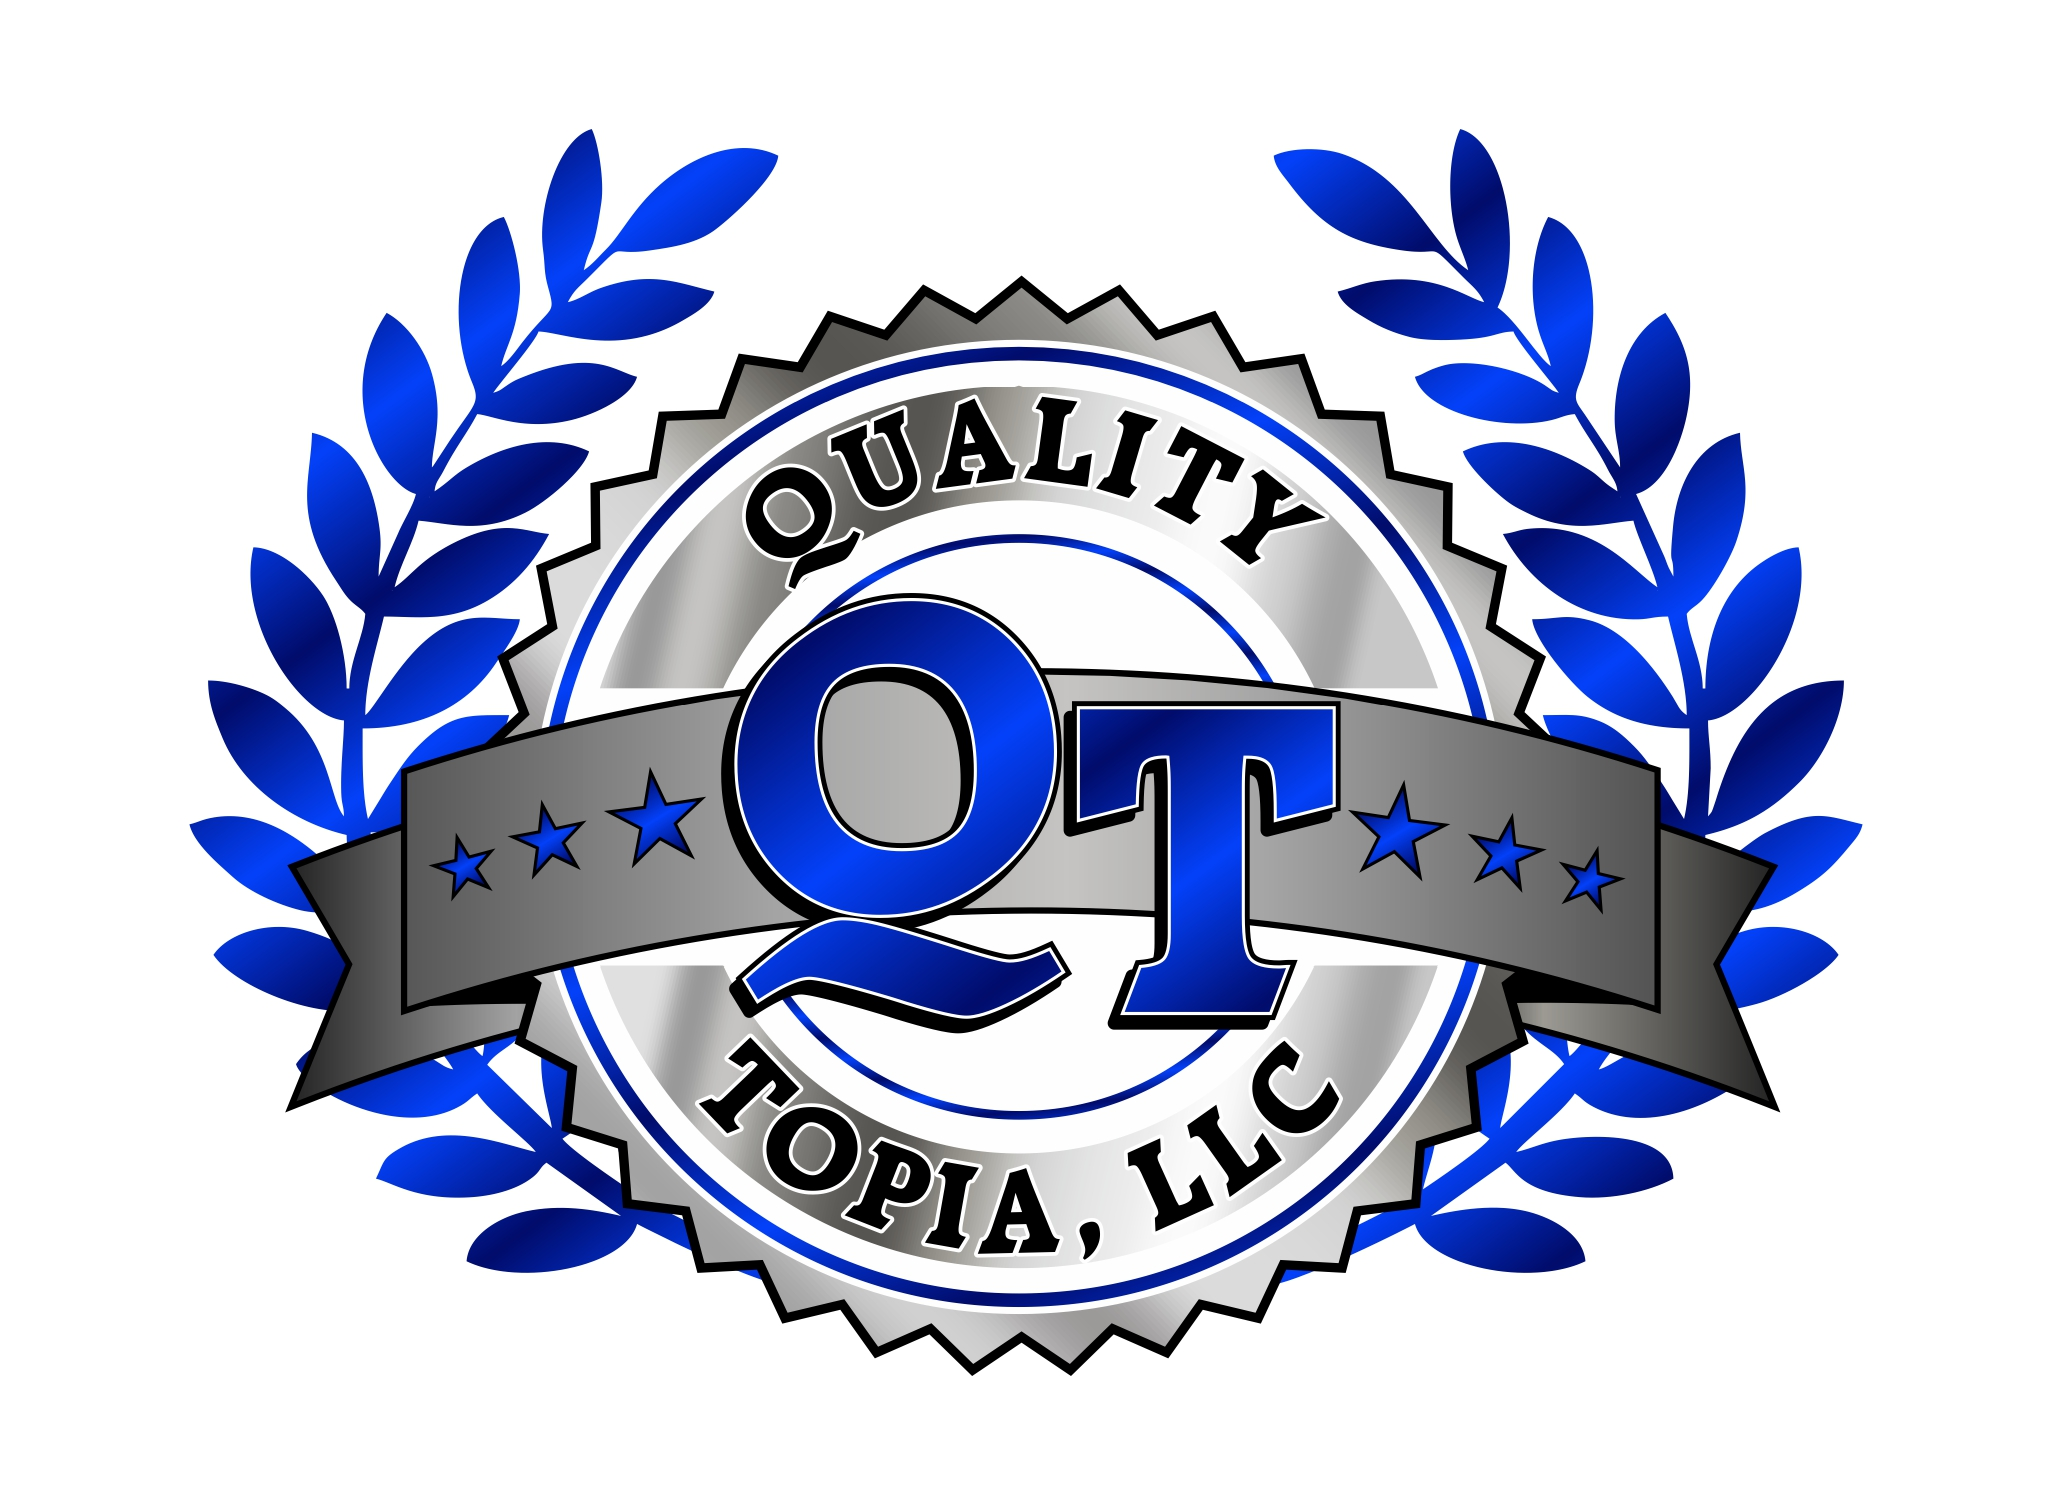 quality topia llc logo design